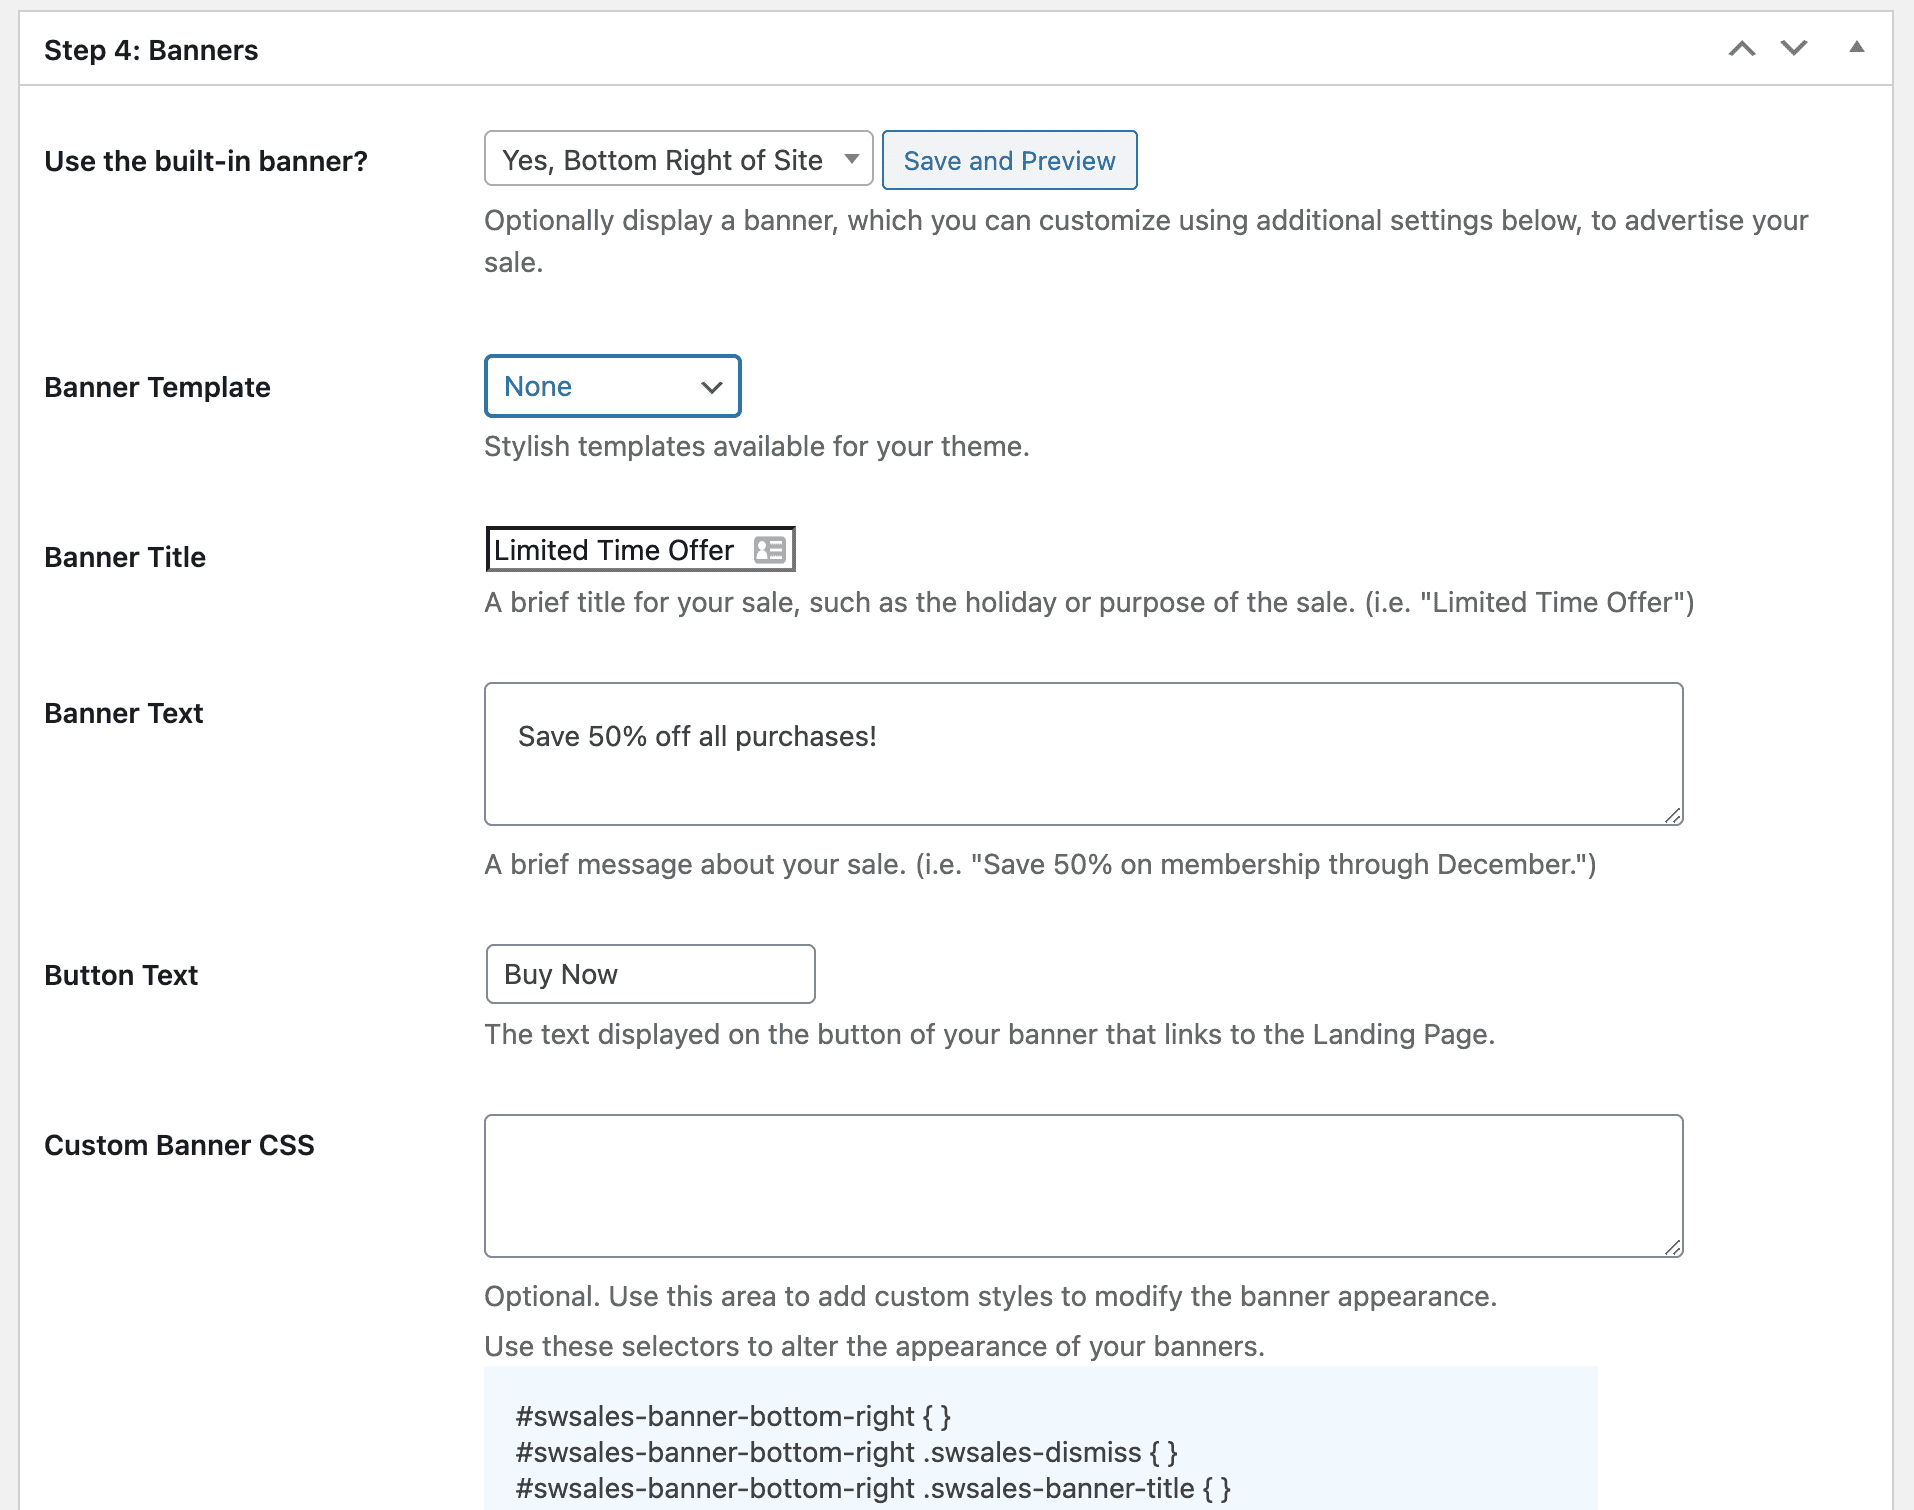 Example of Sitewide Sales Step 4 settings area.